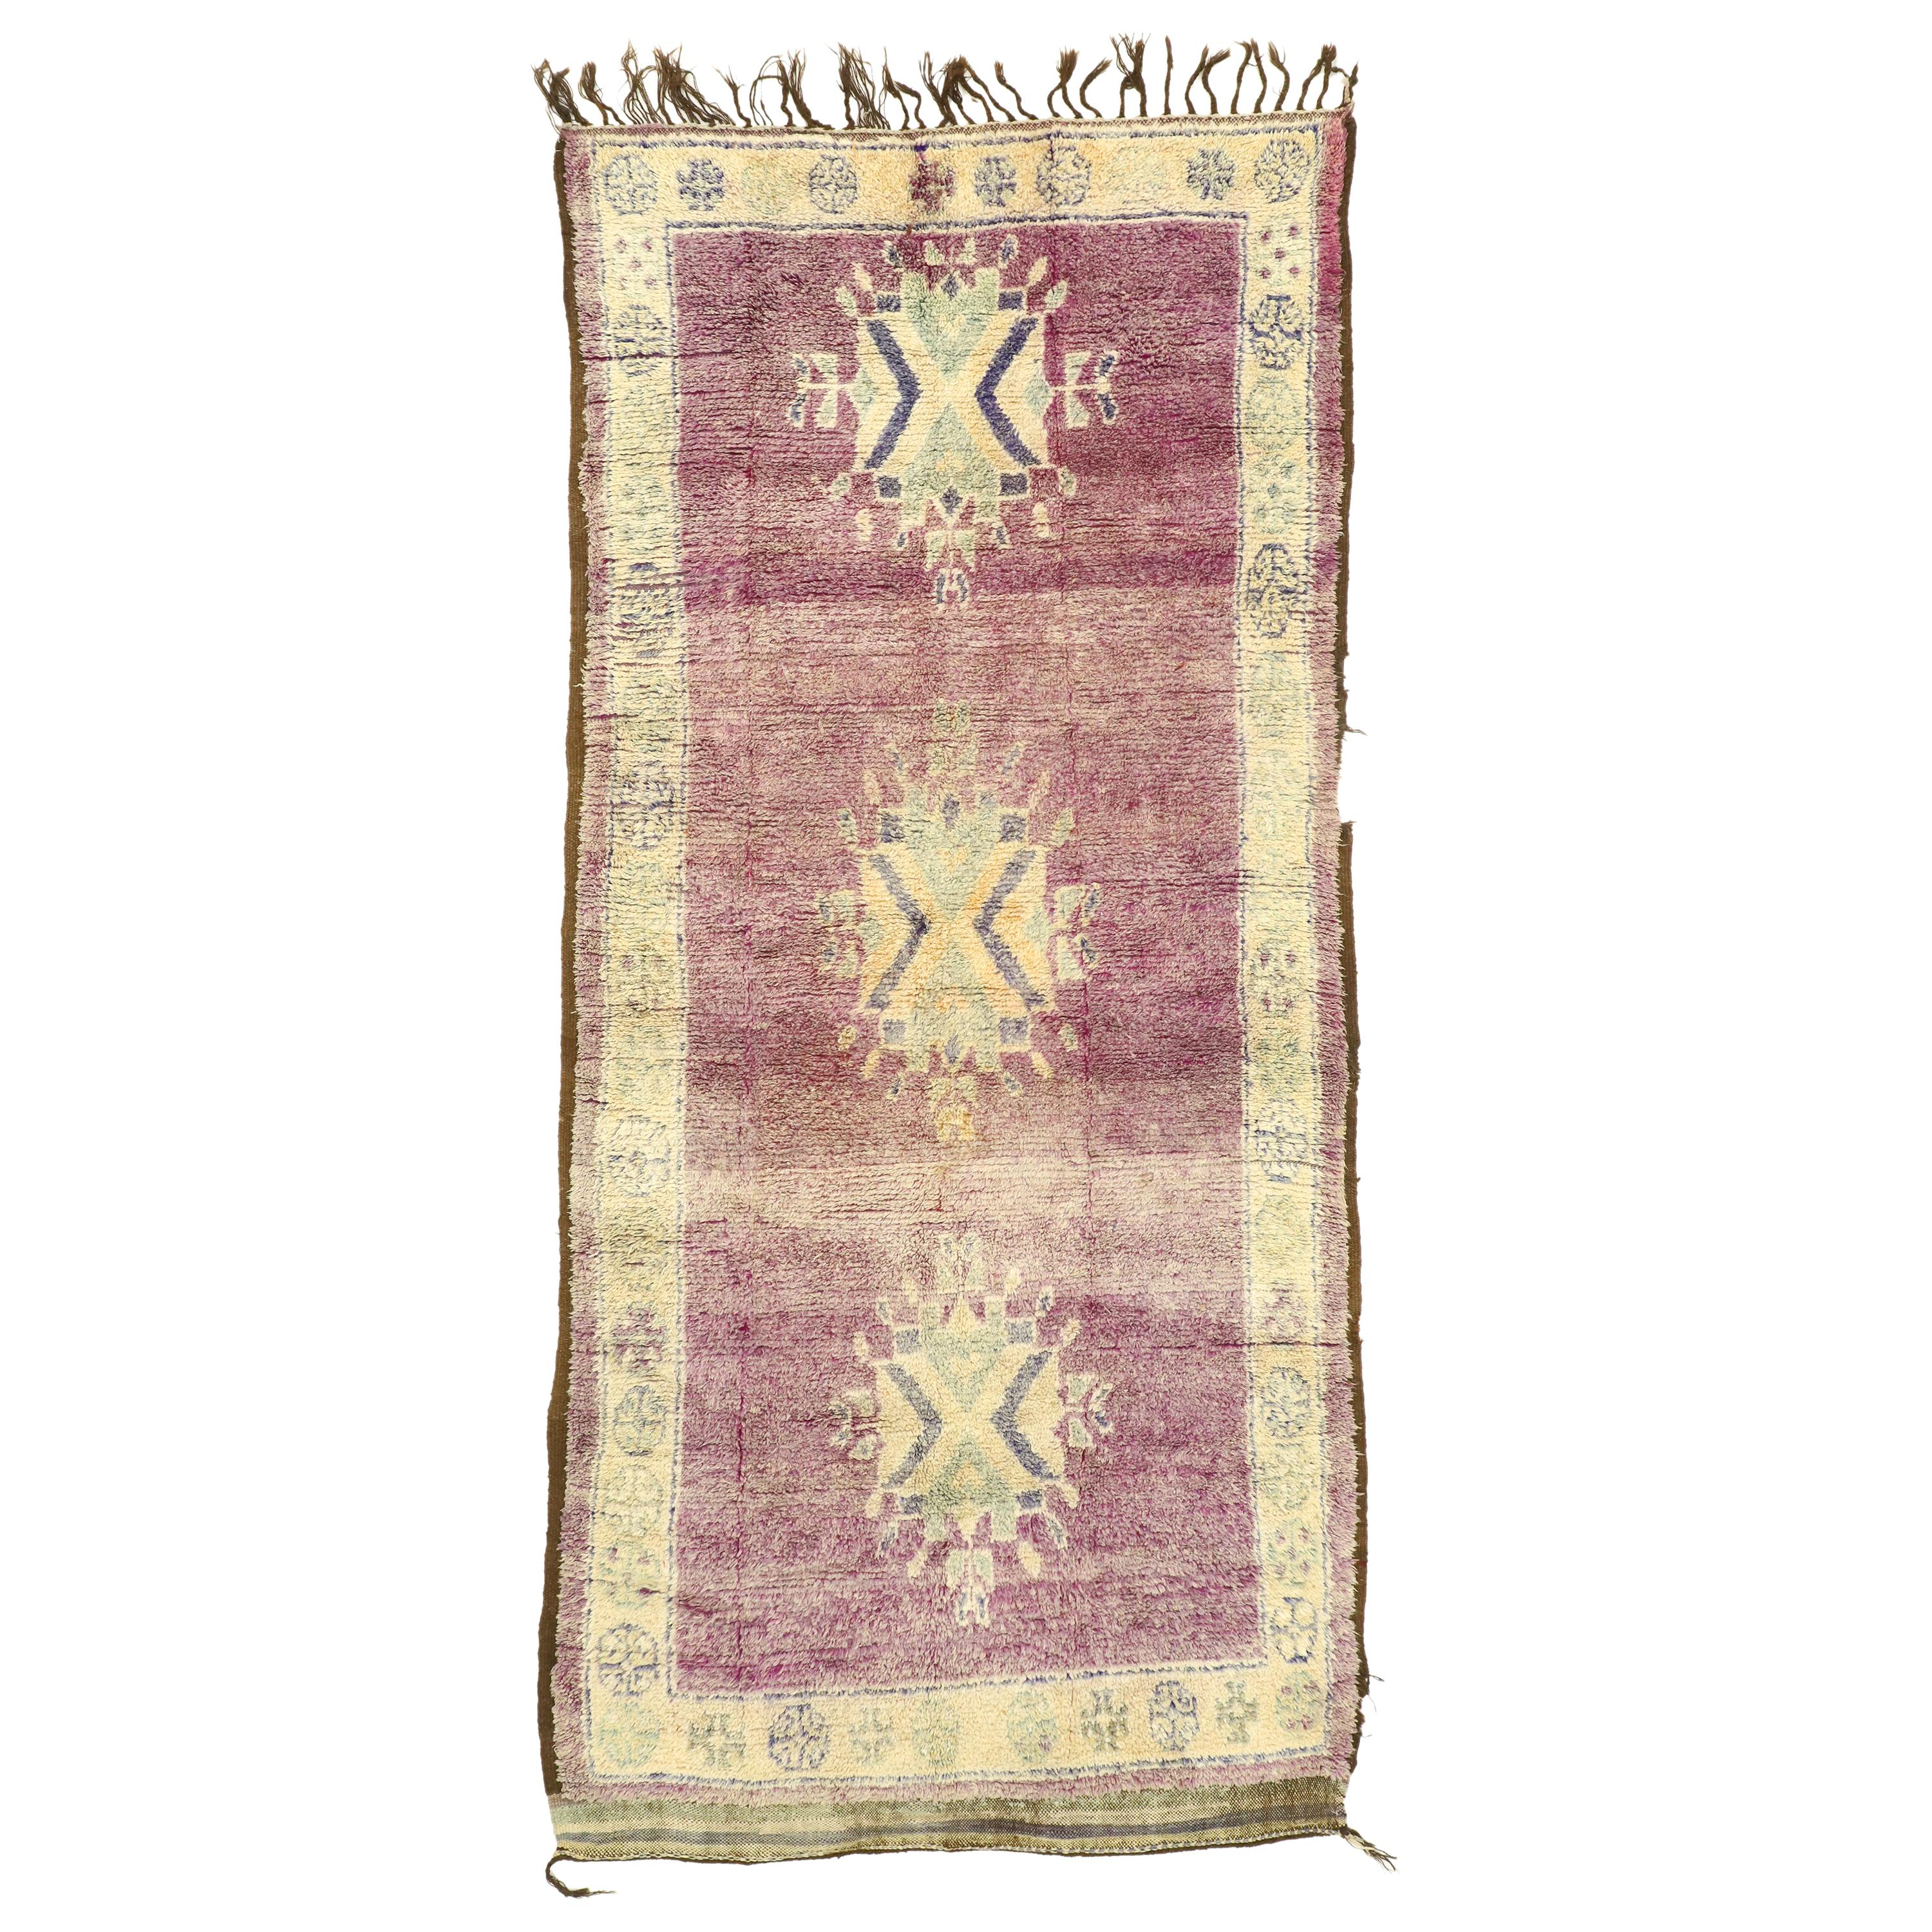 Vintage Berber Moroccan Rug with Boho Chic Tribal Style